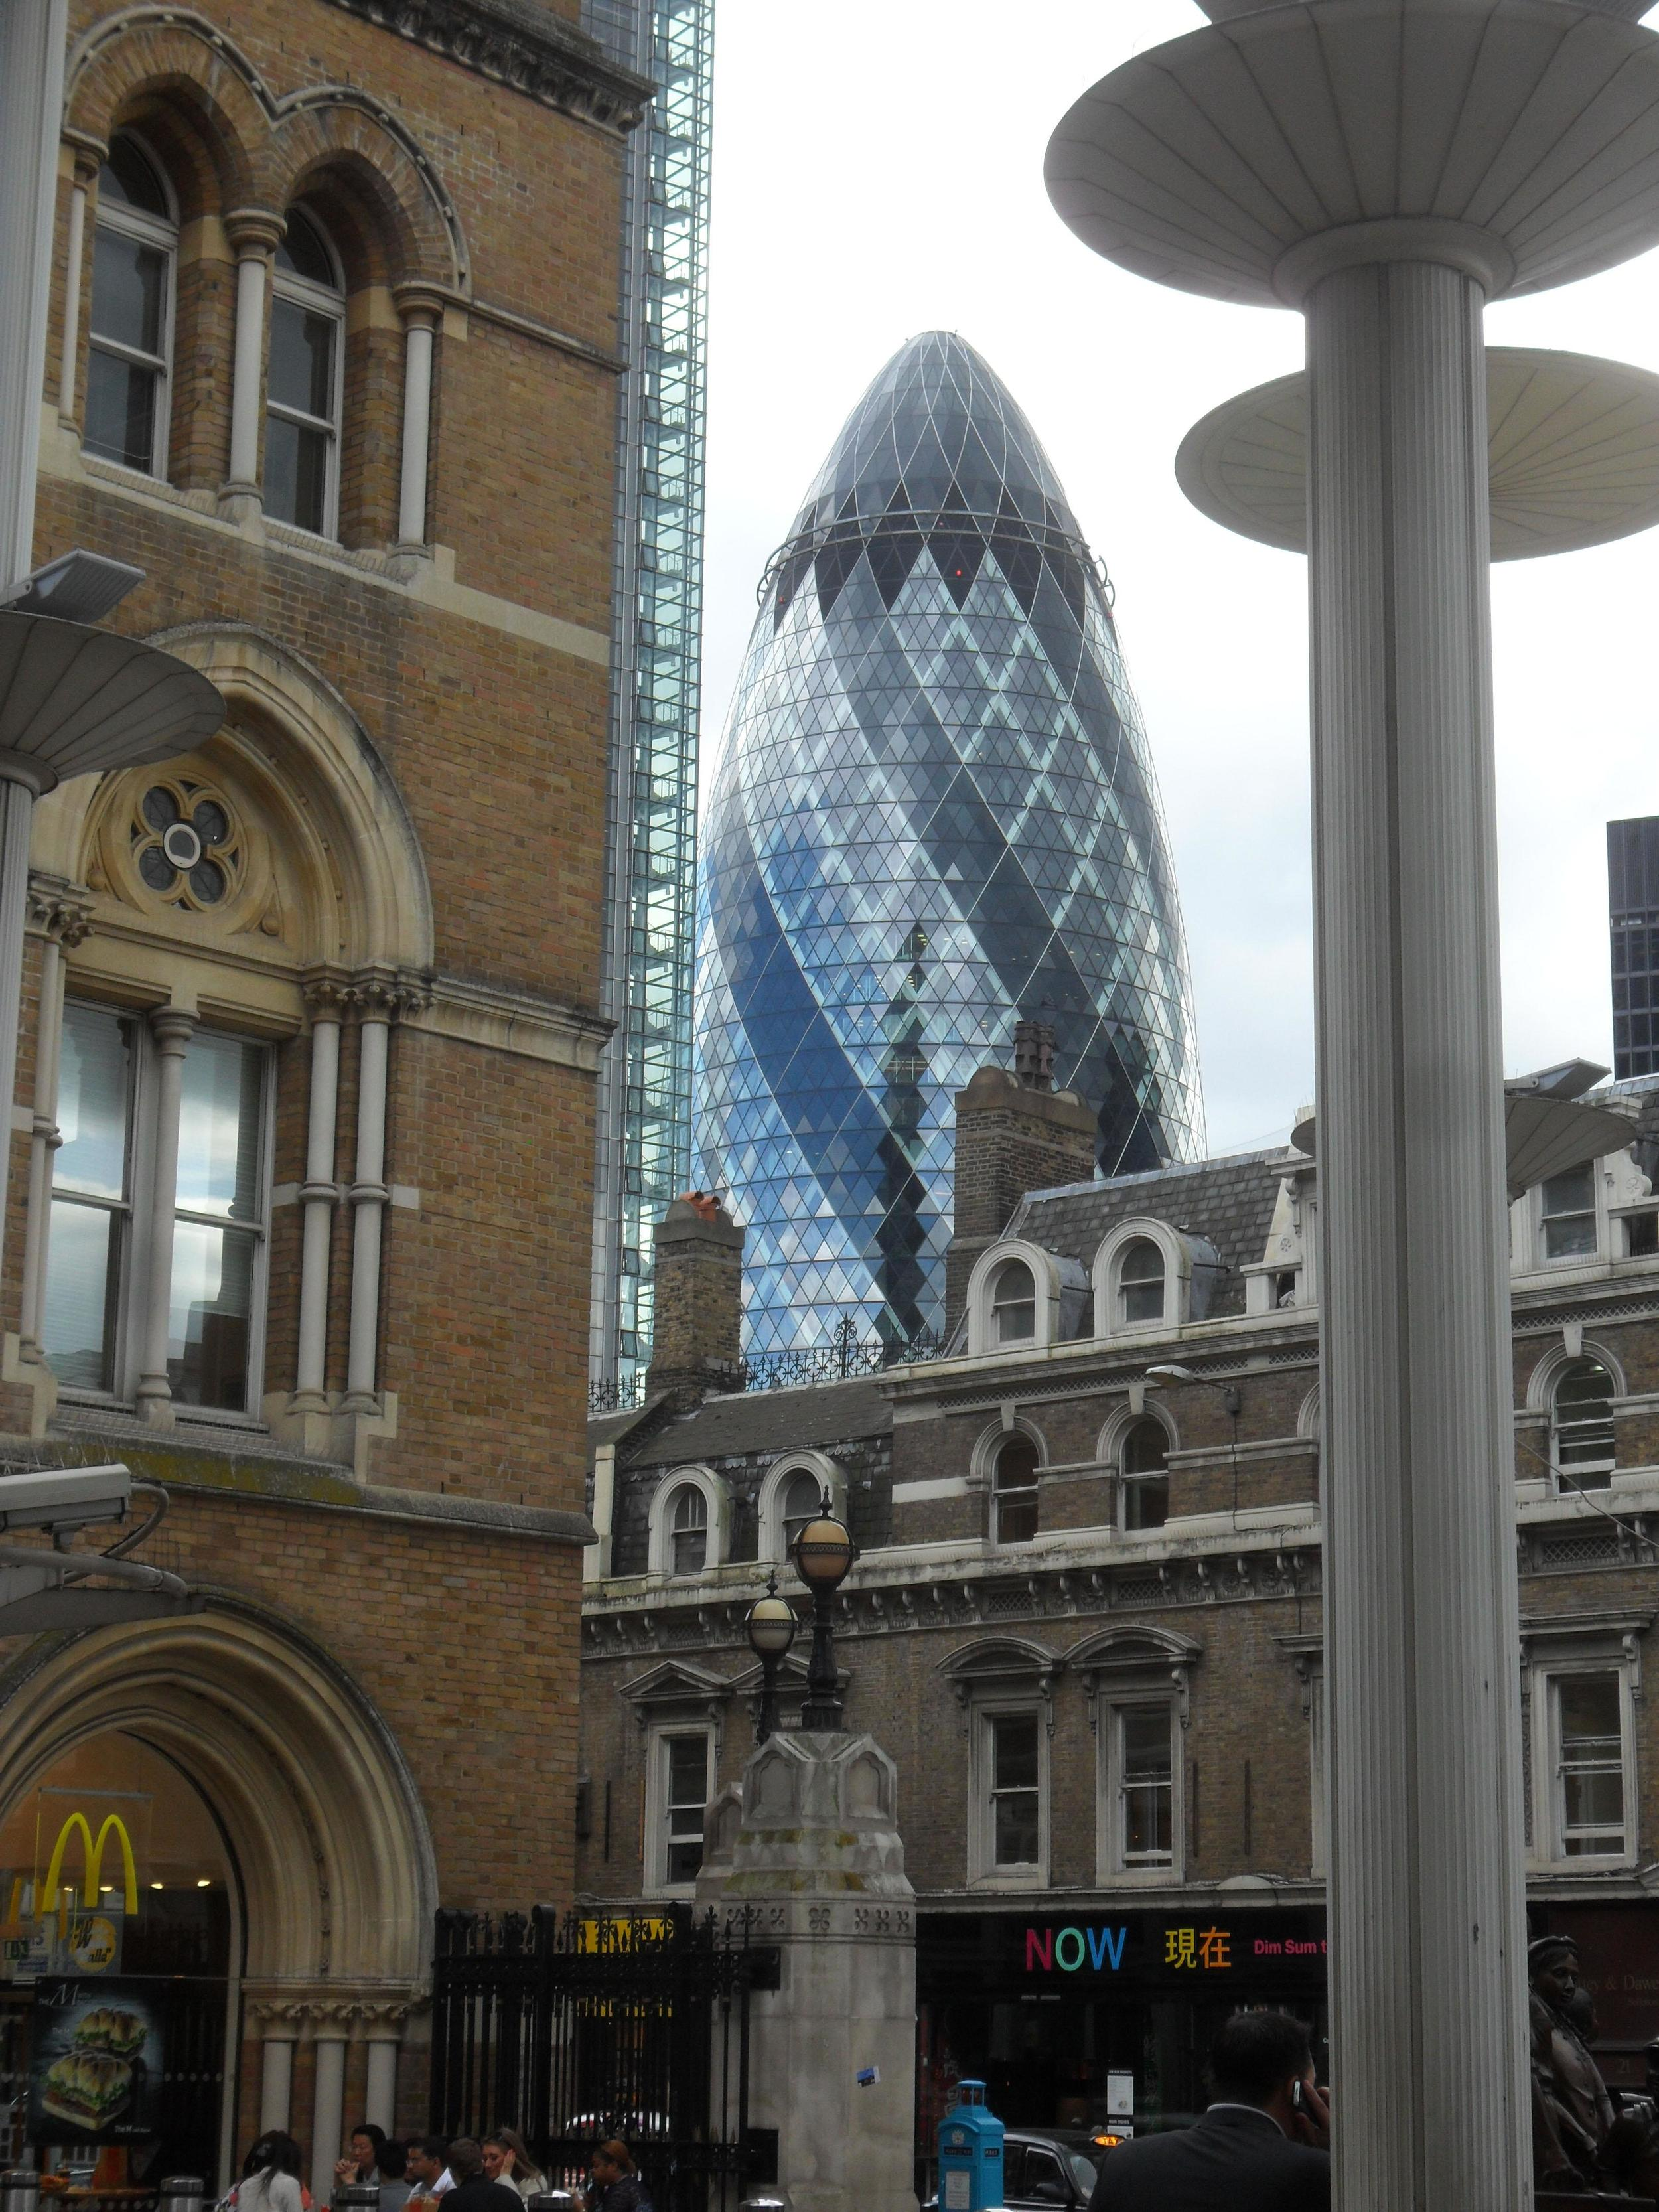 Gherking building in London fronted by old buildings.  Photo taken by Martin Pierce hardware